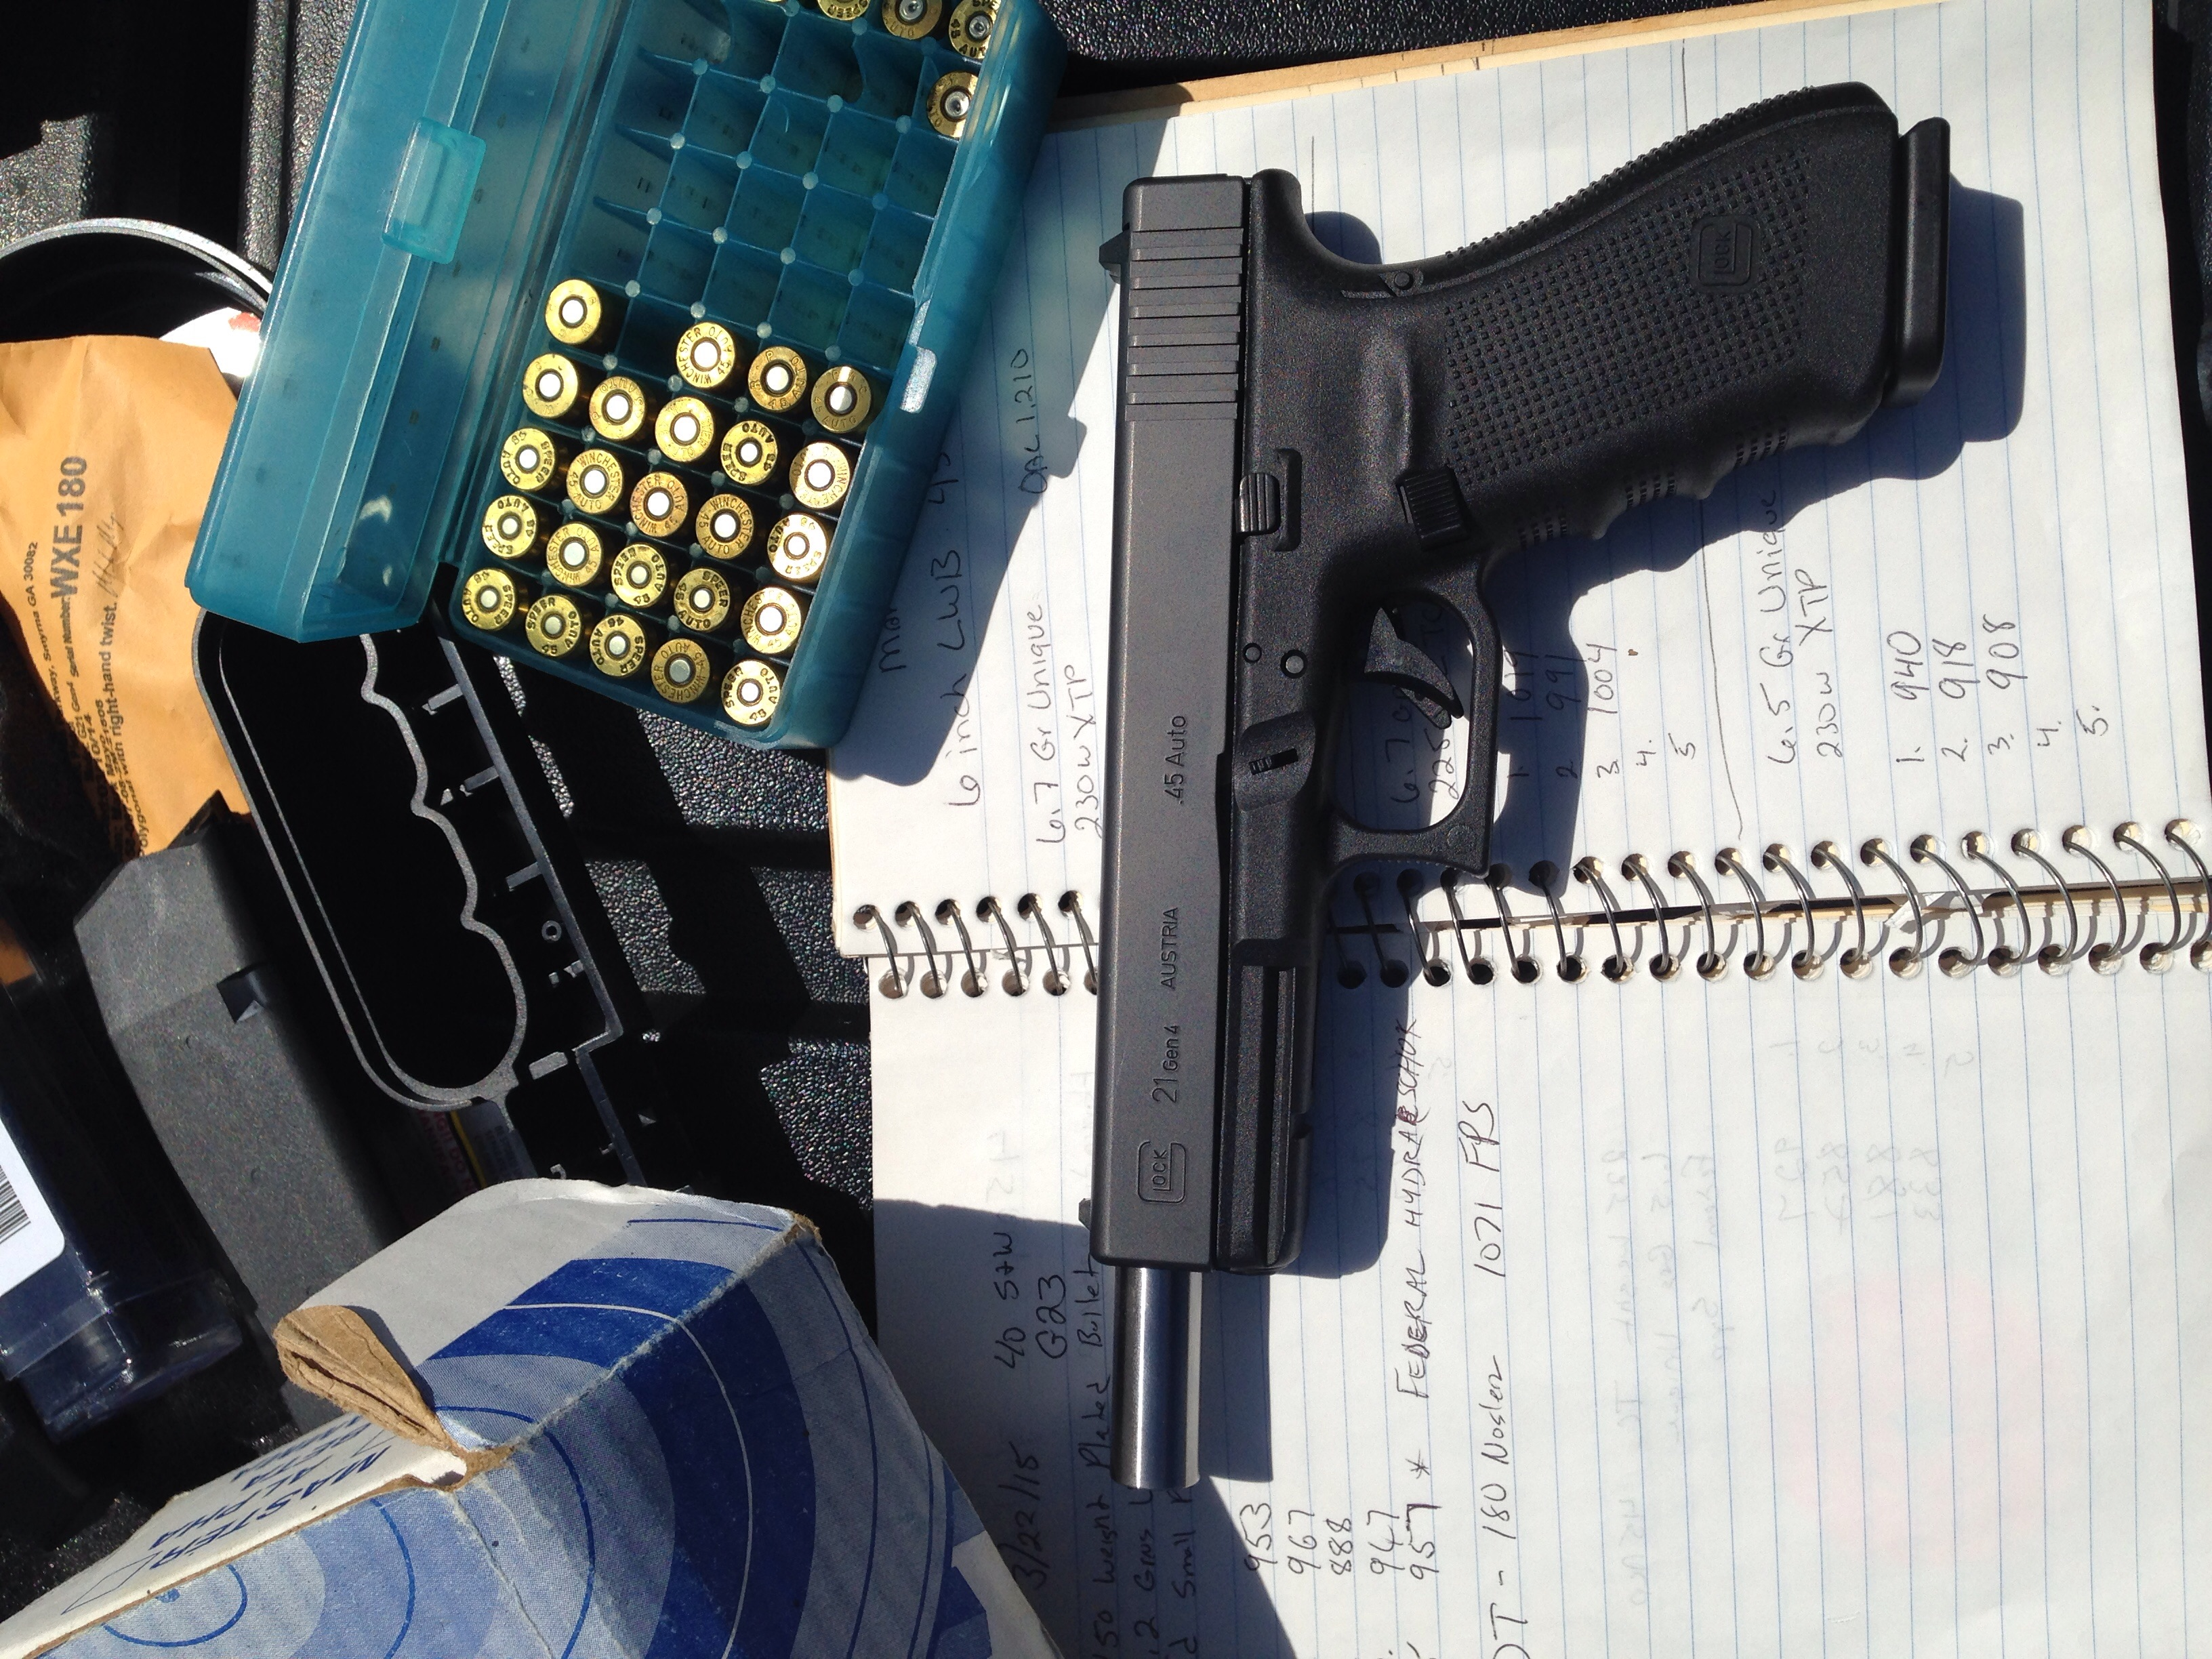 The Glock 21 with 6 inch barrel load tests